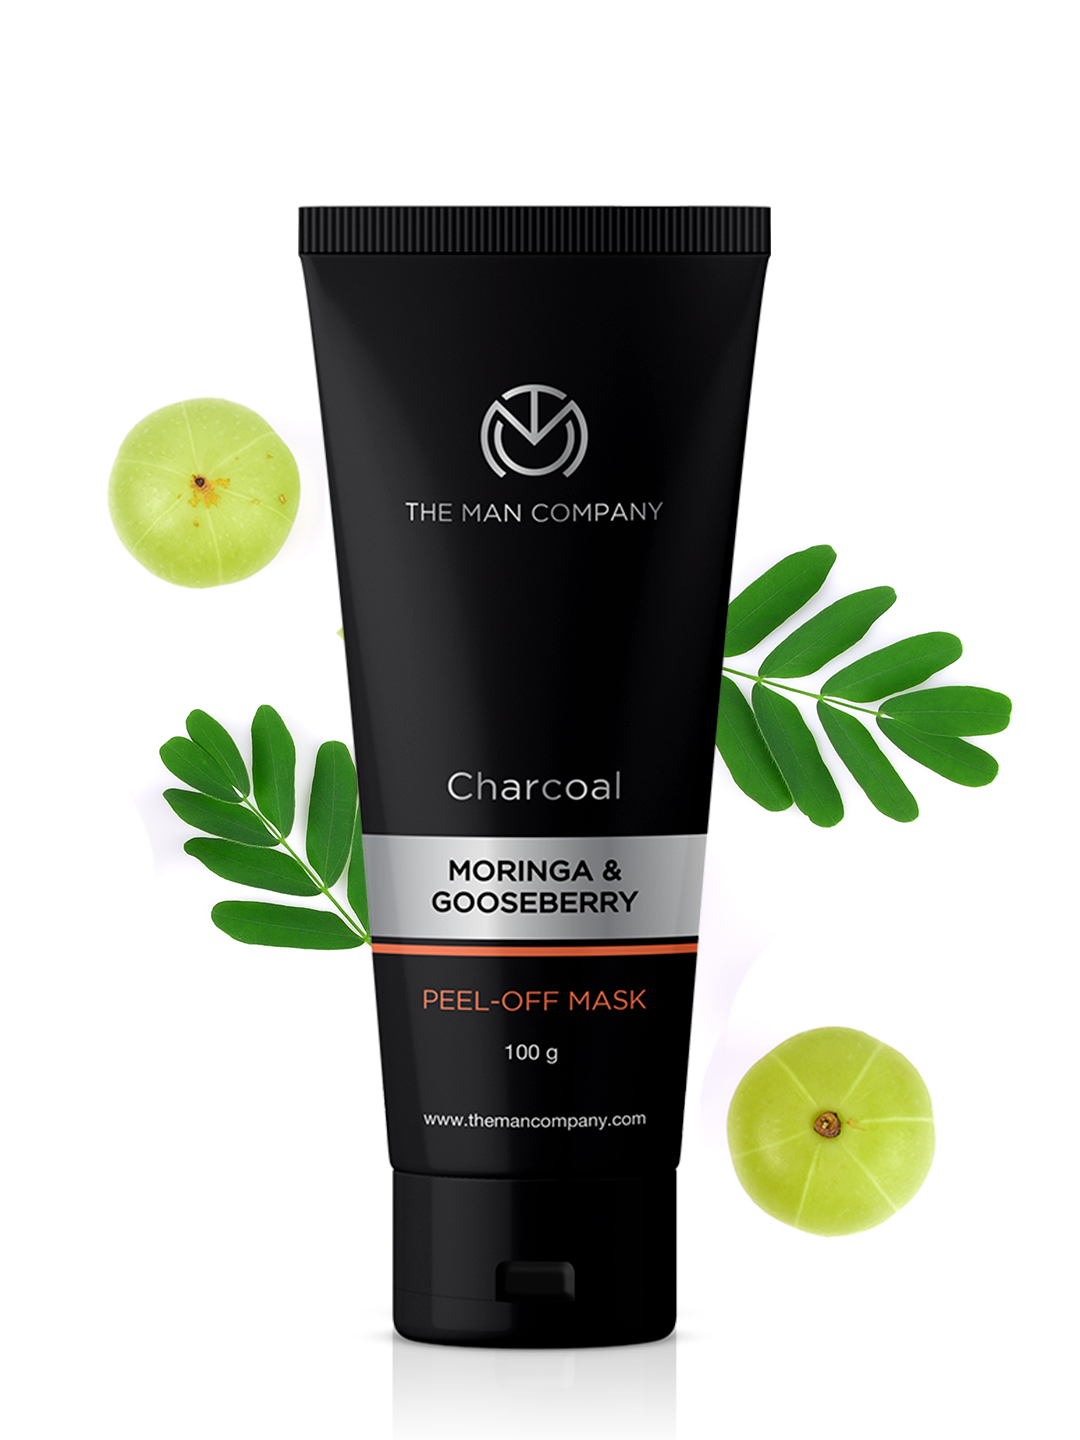 The Man Company Activated Charcoal Peel off Mask Dead skin and blackheads removal face mask, [2x100g] Charcoal, Moringa and Gooseberry …